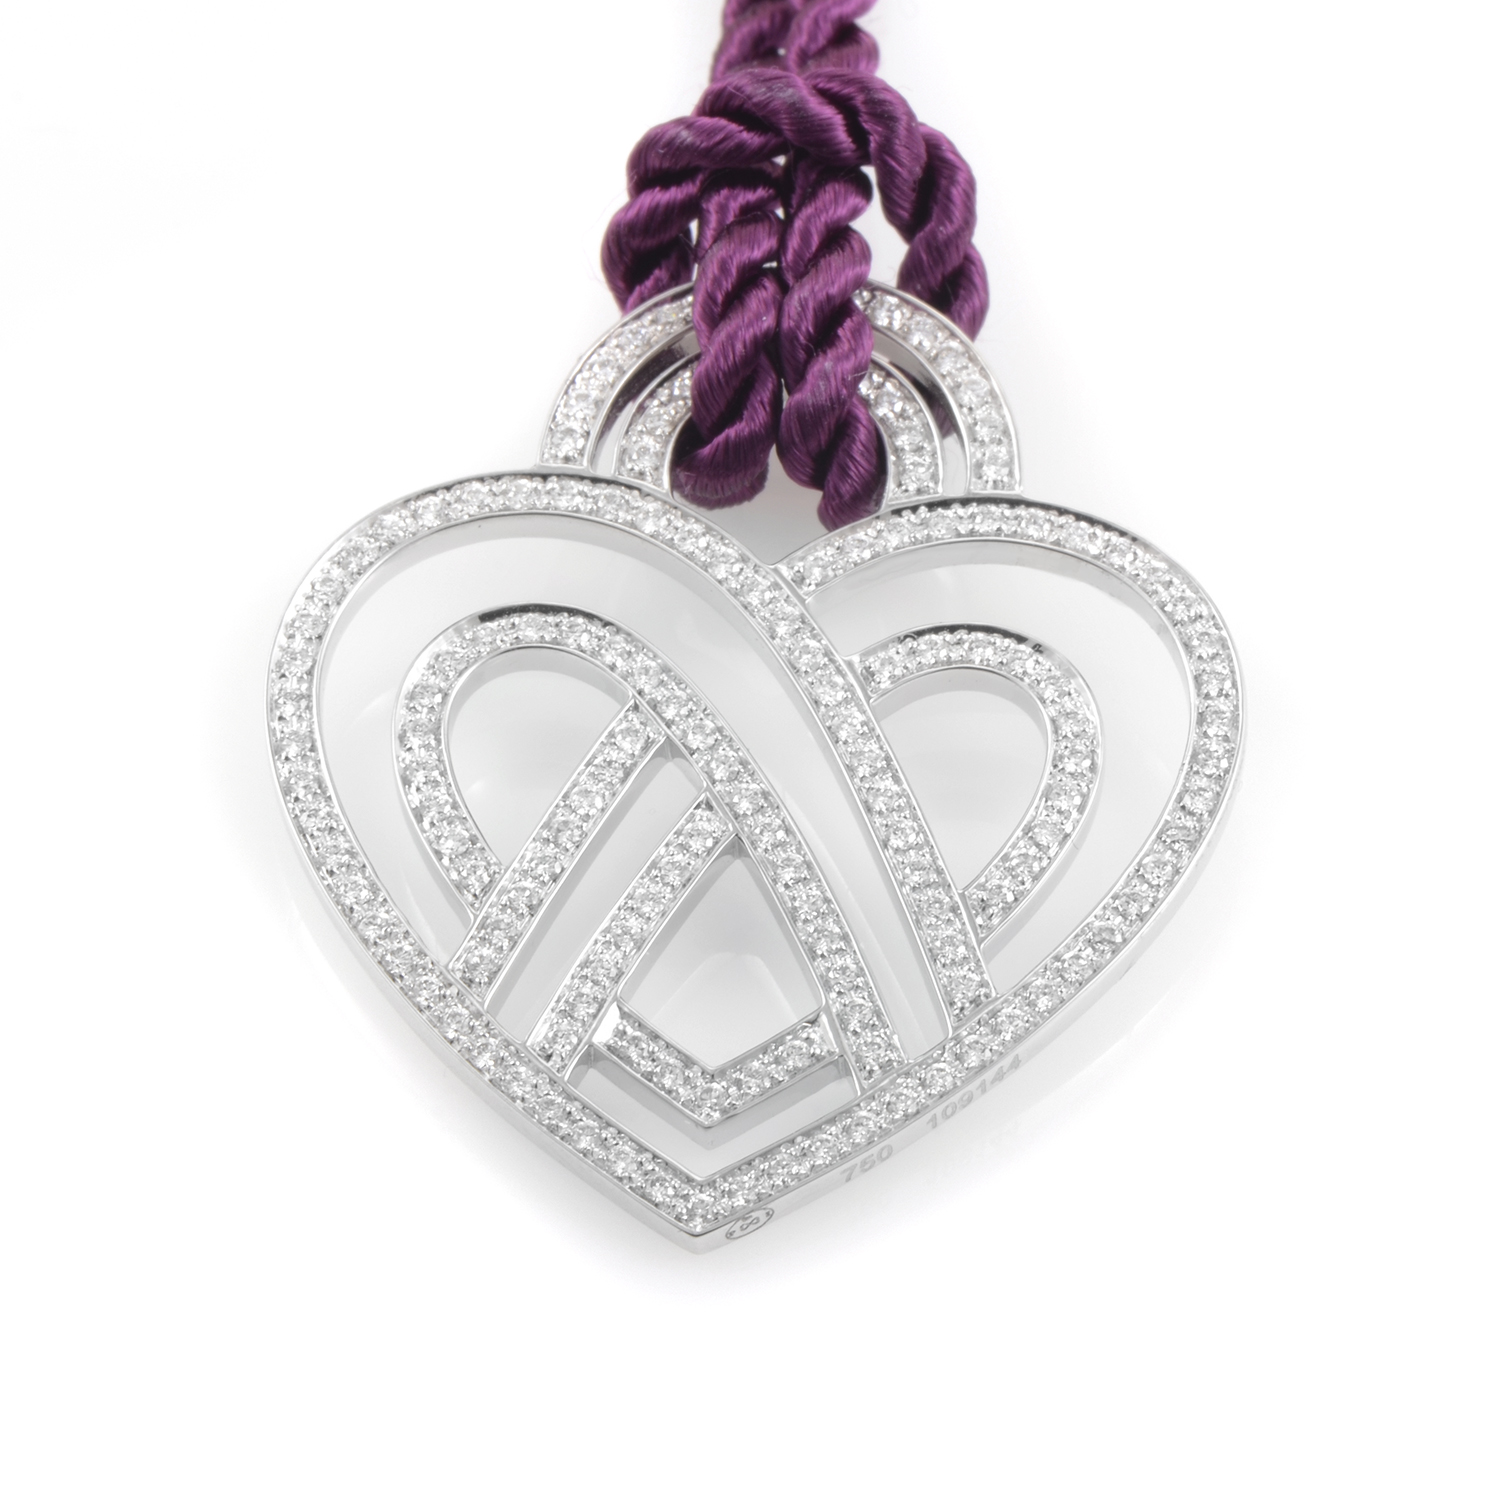 Women's 18K White Gold Diamond Heart Pendant & Cord Necklace PPC8854PUR